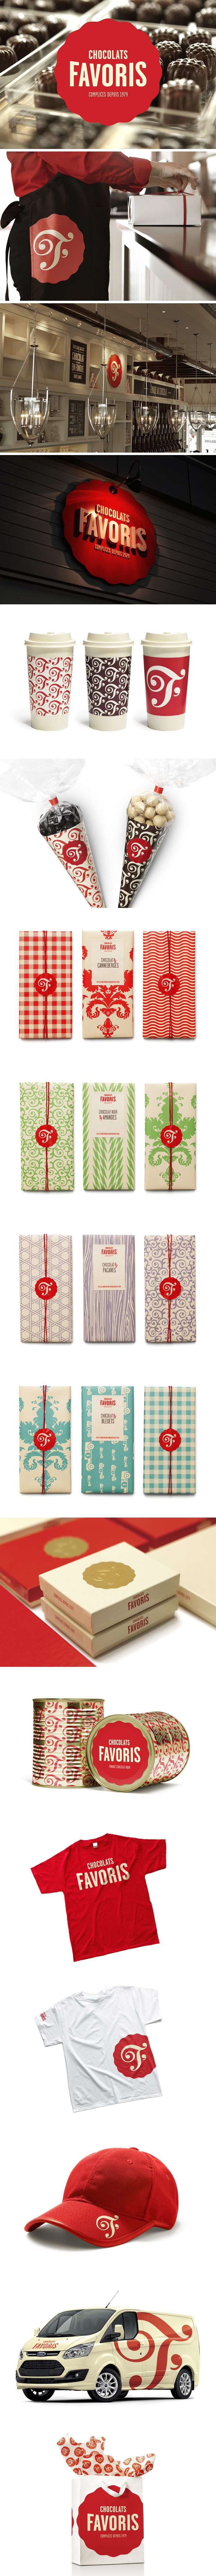 Chocolats Favoris identity and packaging by lg2